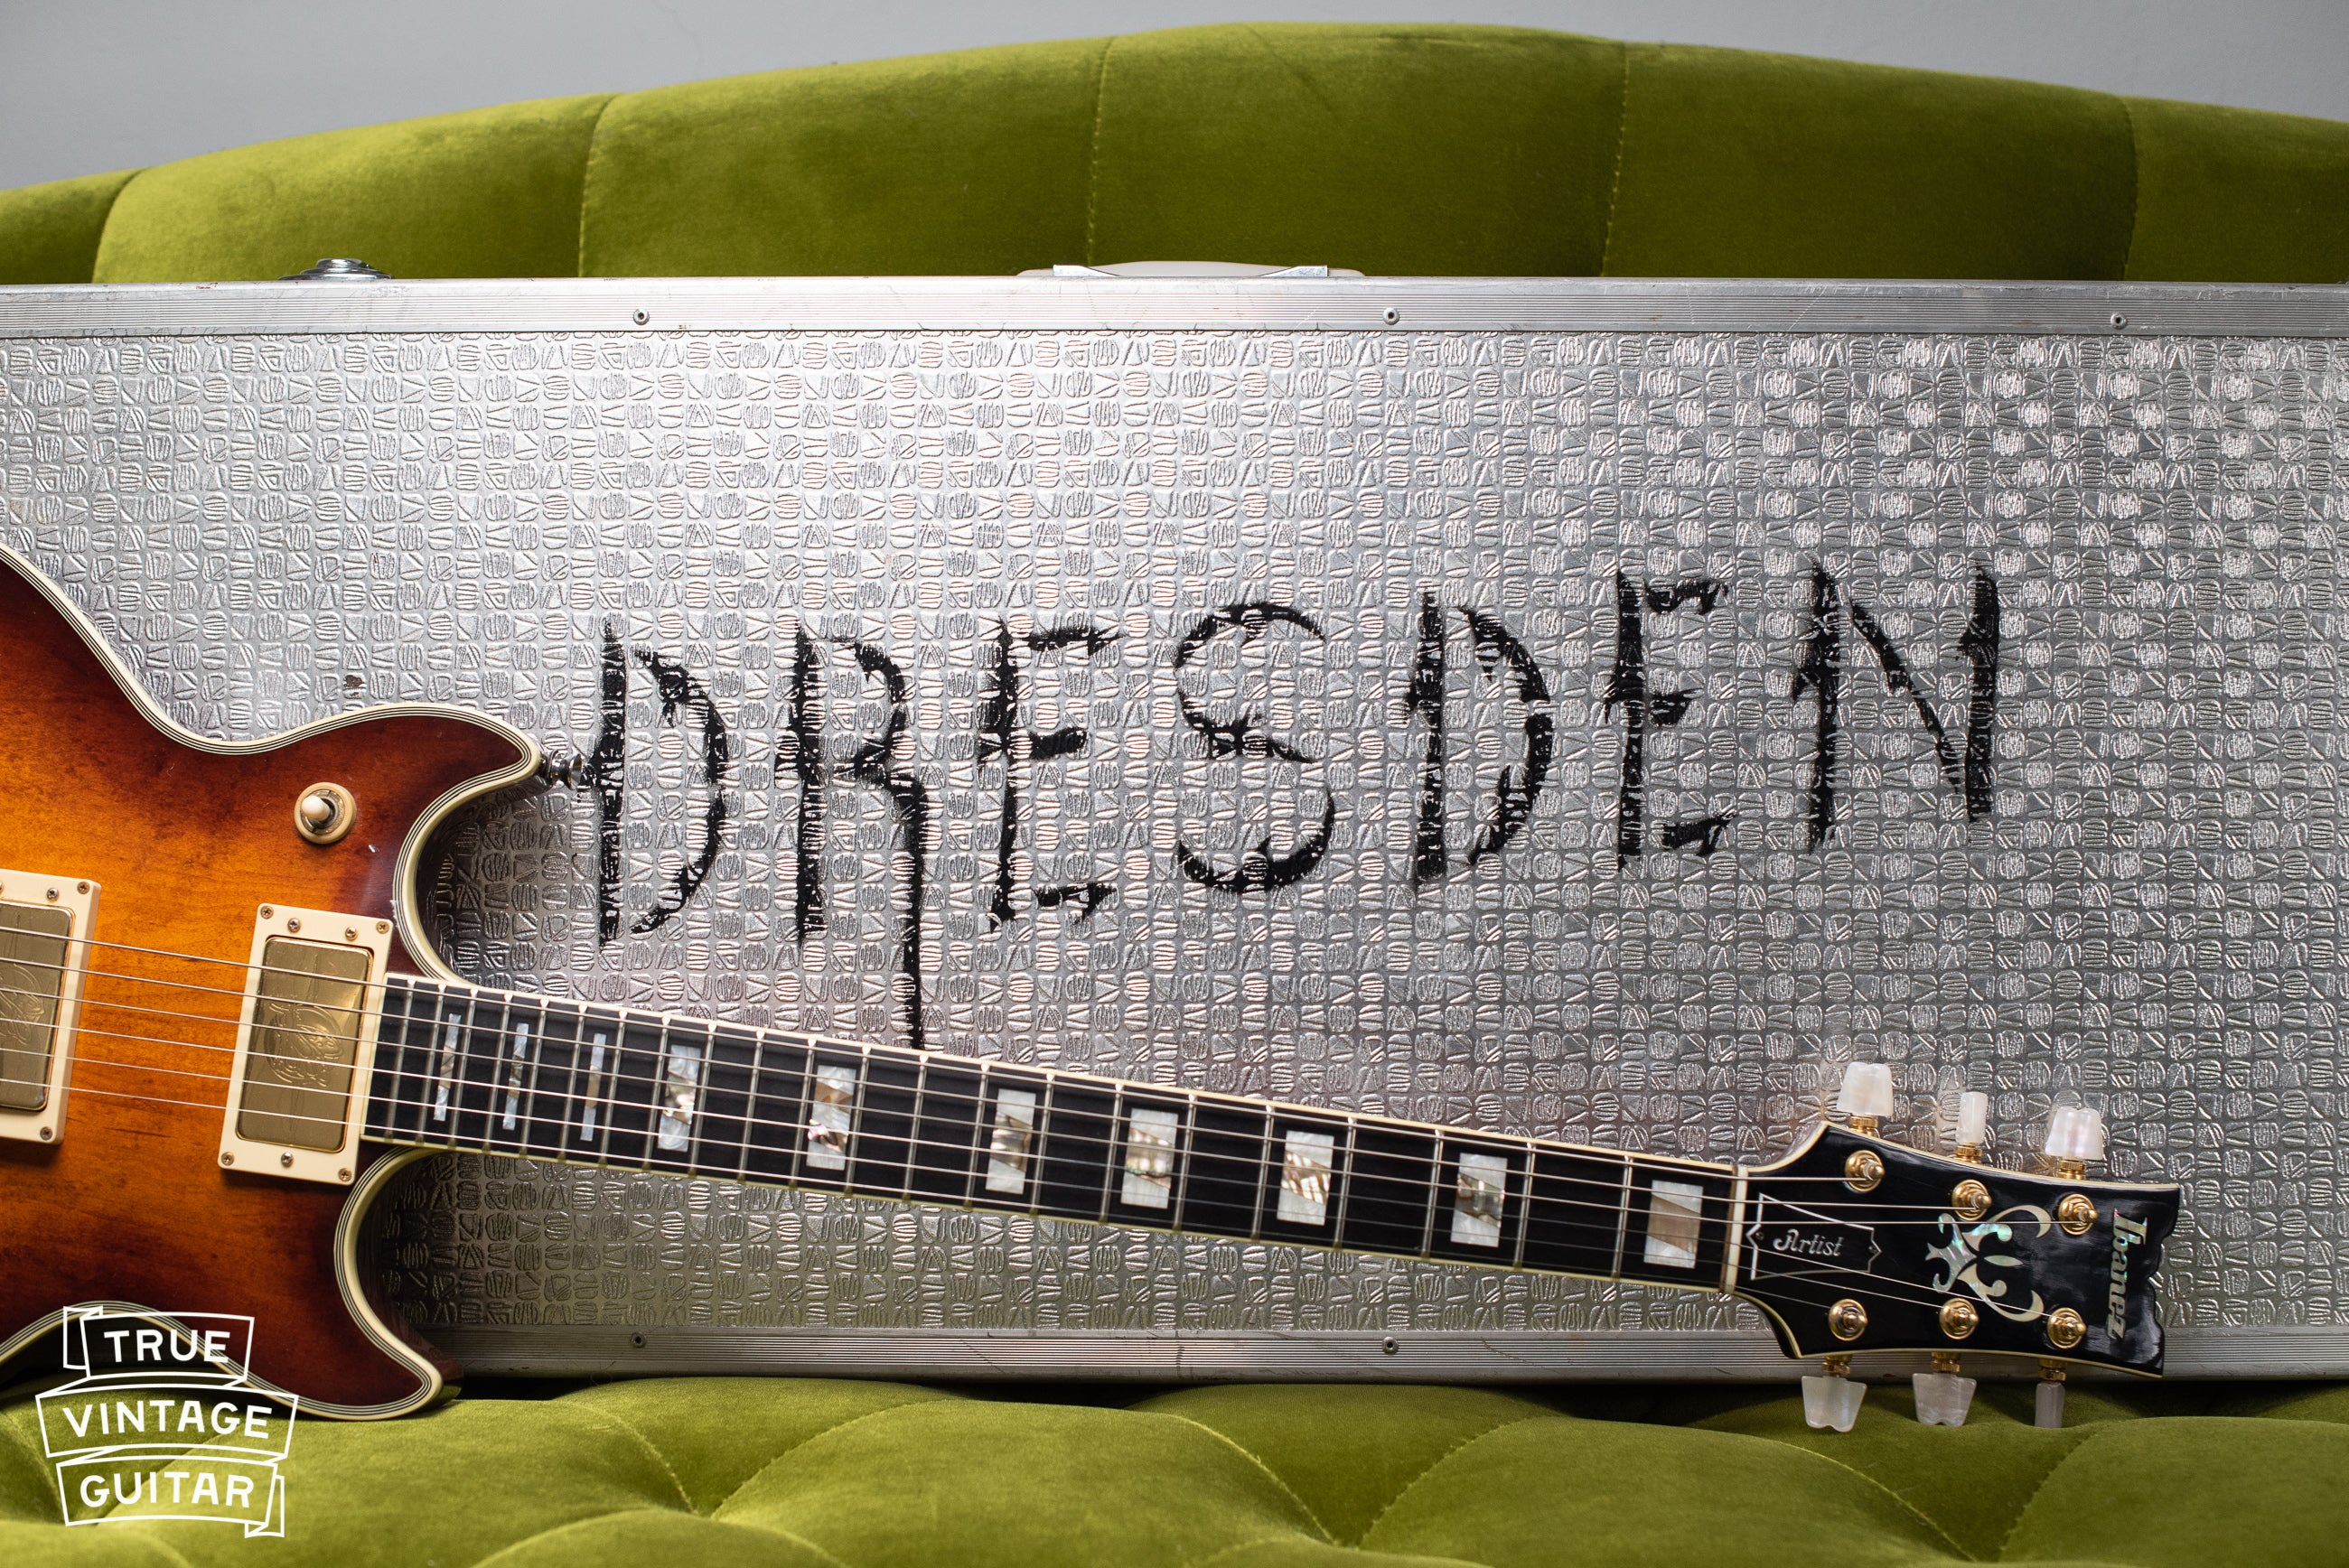 Dresden band name 1980s